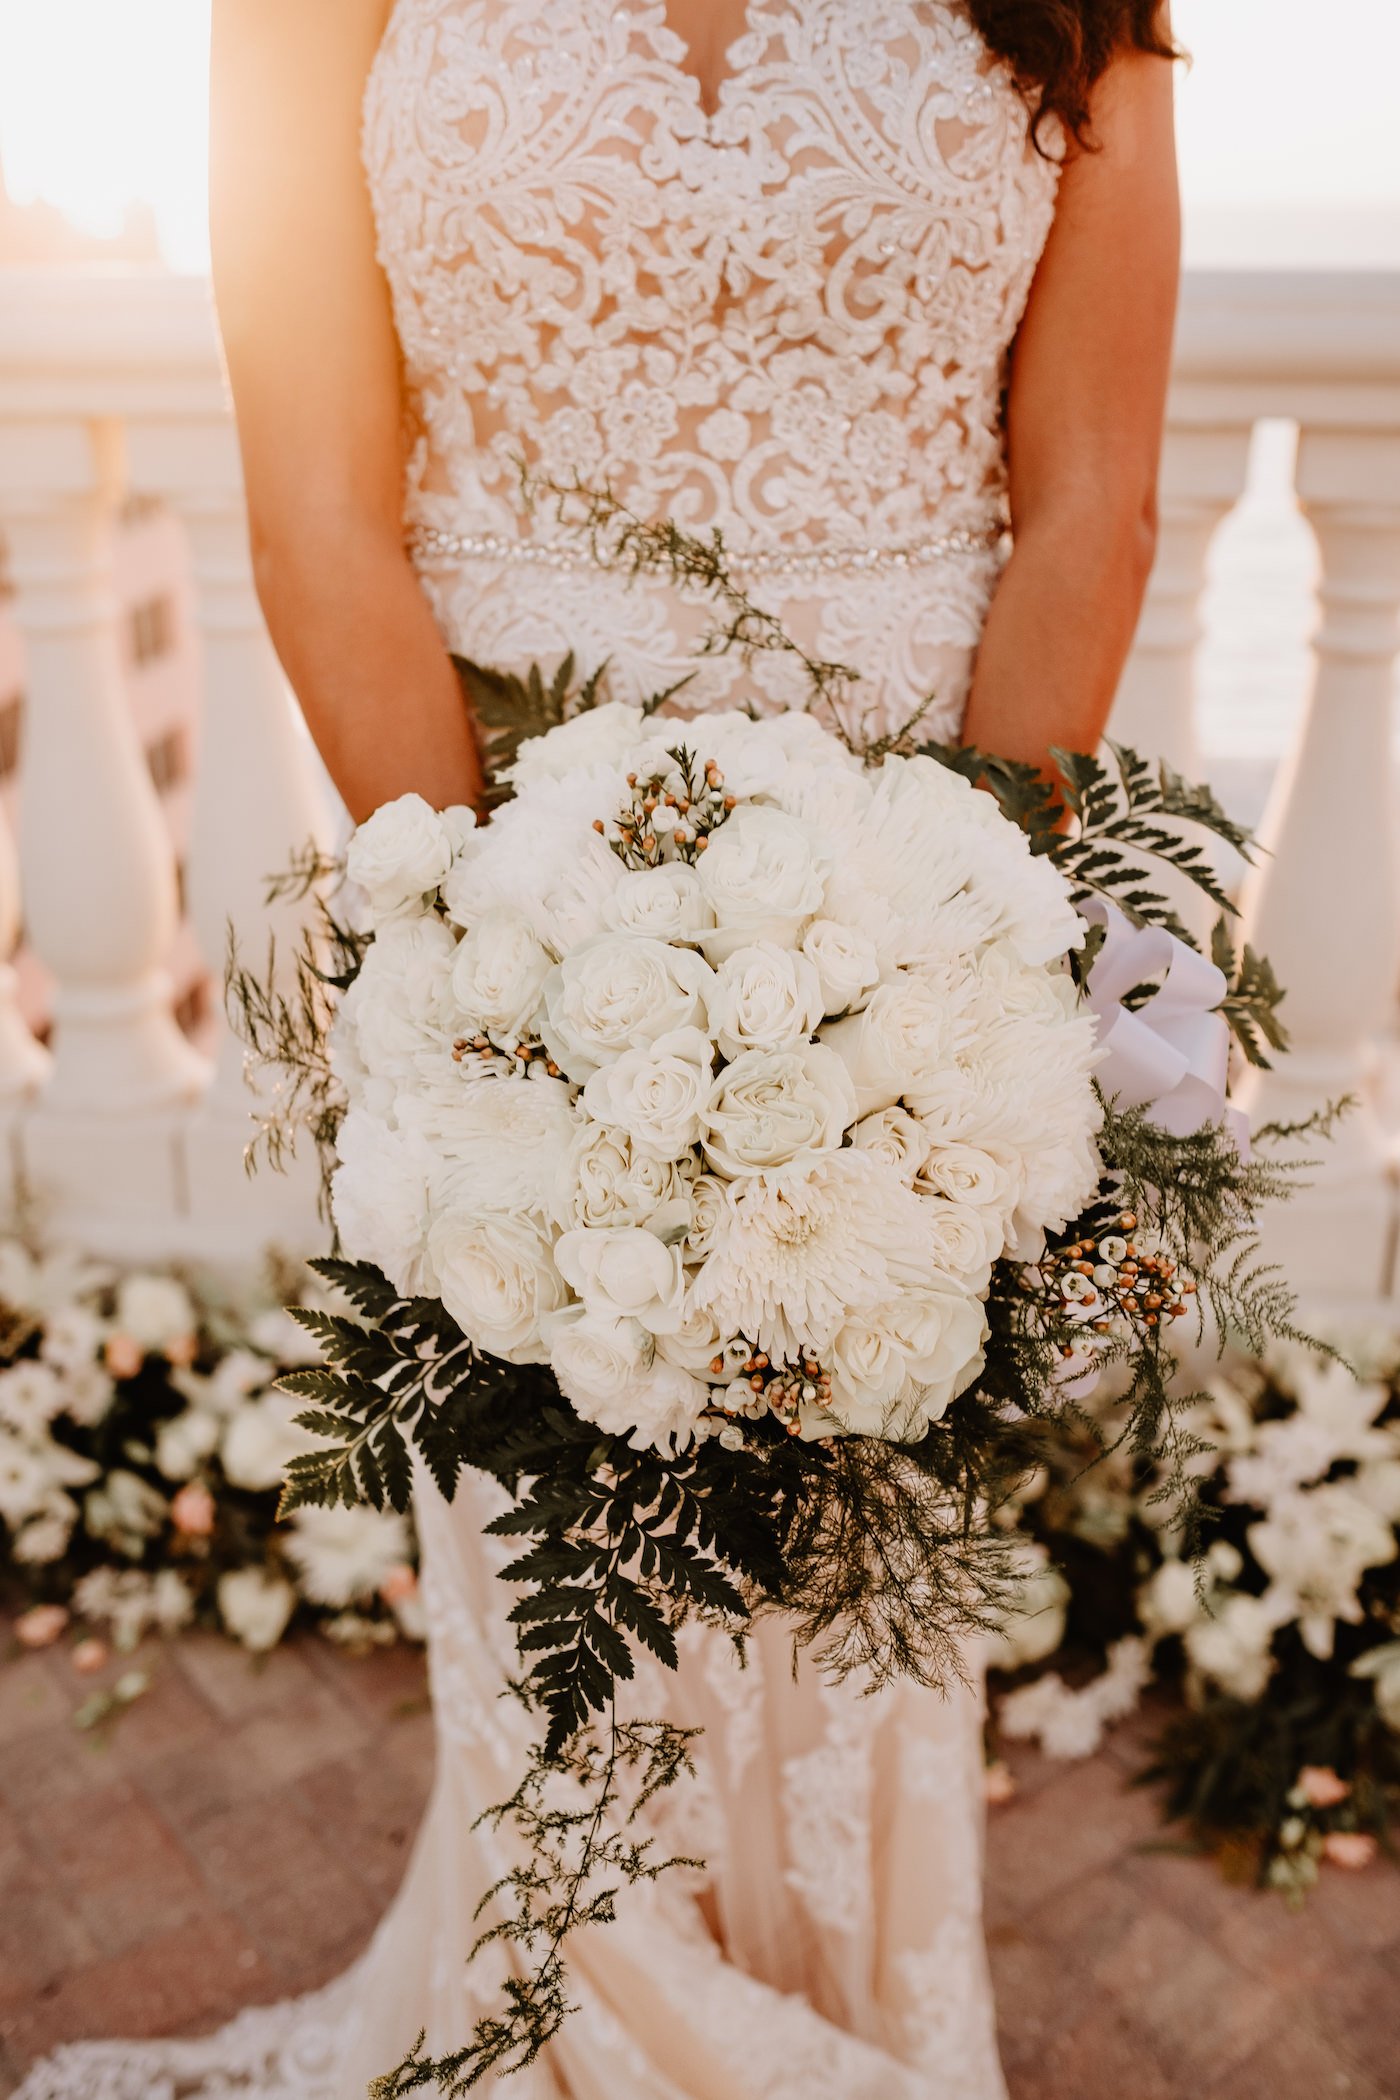 Round Monochromatic Bride Wedding Bouquet White Roses Ivory Chrysanthemums with Greenery Ferns